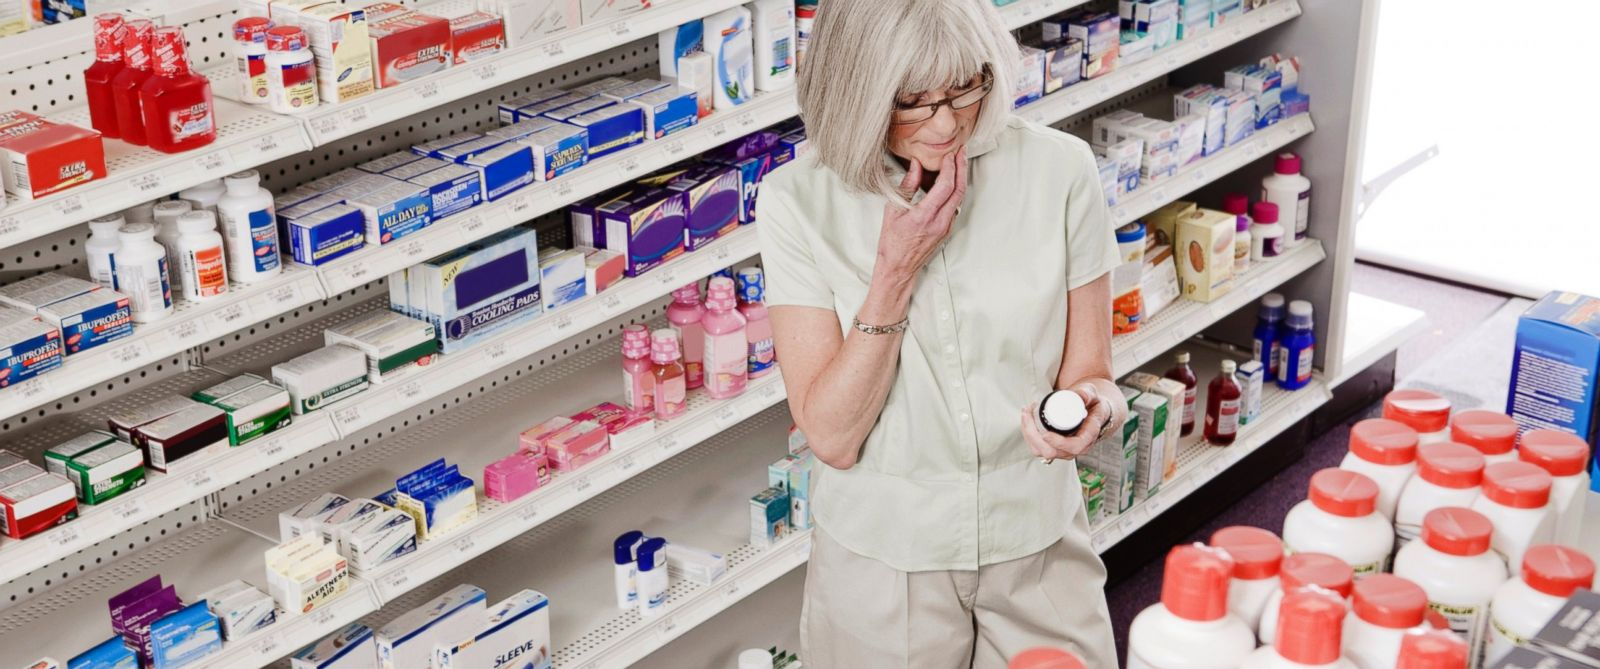 PHOTO: Over-the-counter drugs, like Benedryl, may be linked to dementia, according to a new study published this week in JAMA Internal Medicine.